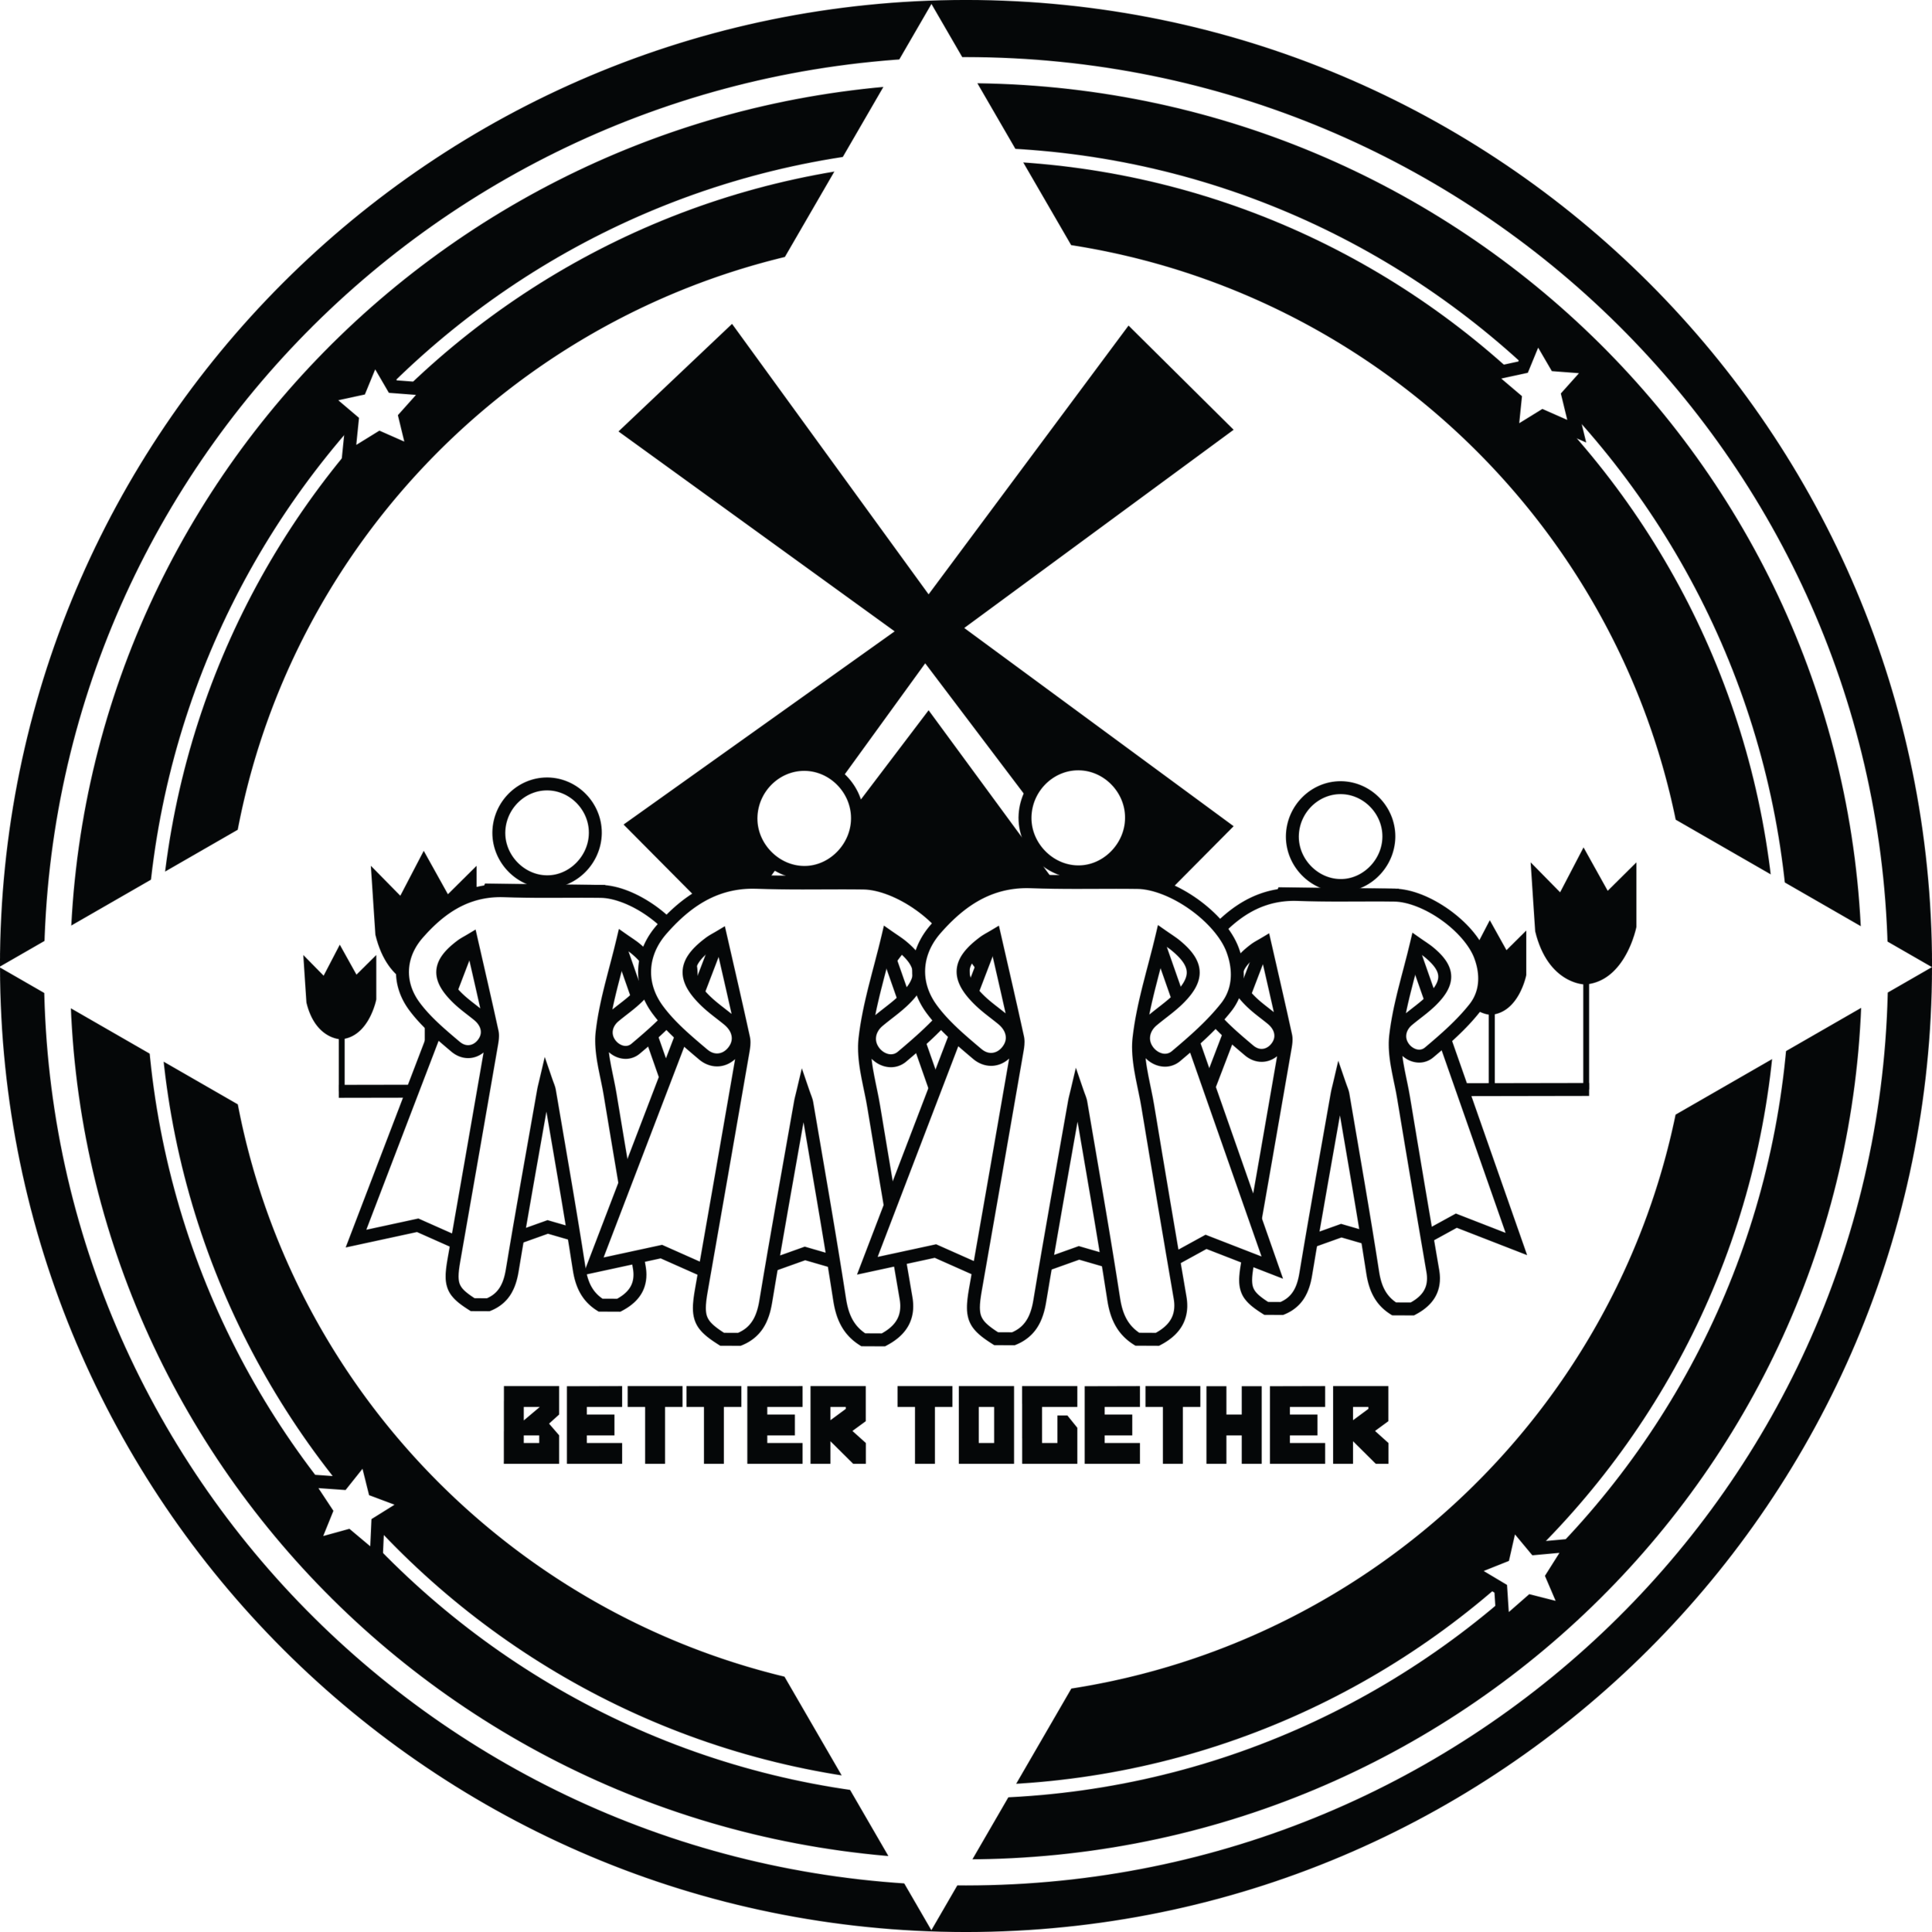 HollandLogo_Transparent_BetterTogether.png